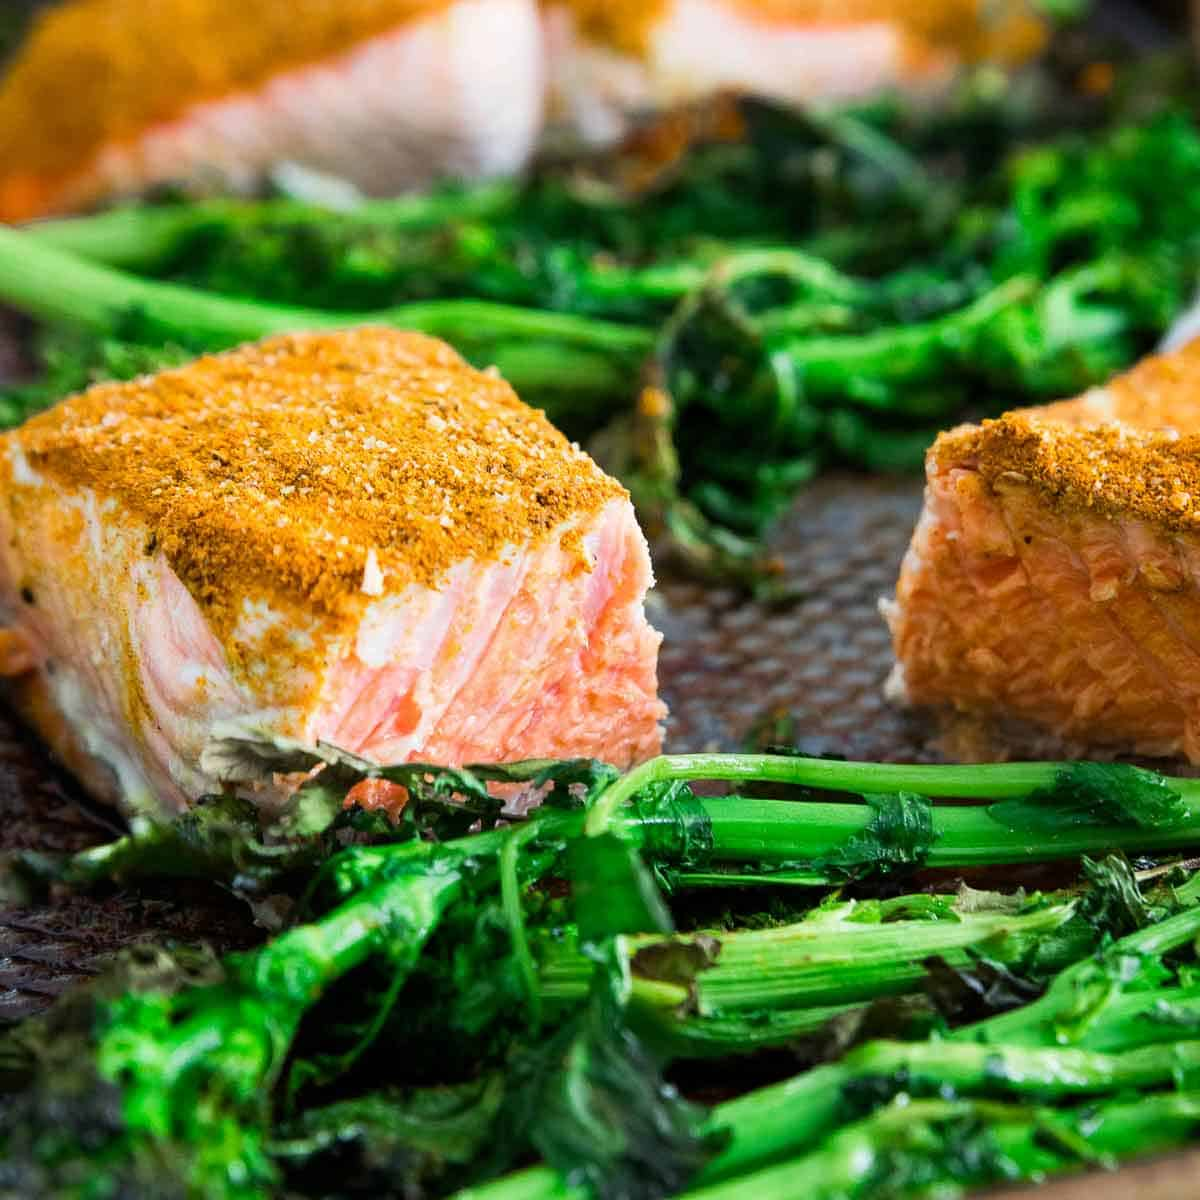 Sheet pan cinnamon turmeric wild salmon cooked with broccoli rabe on a sheet pan is a healthful dinner option and ready in no time!